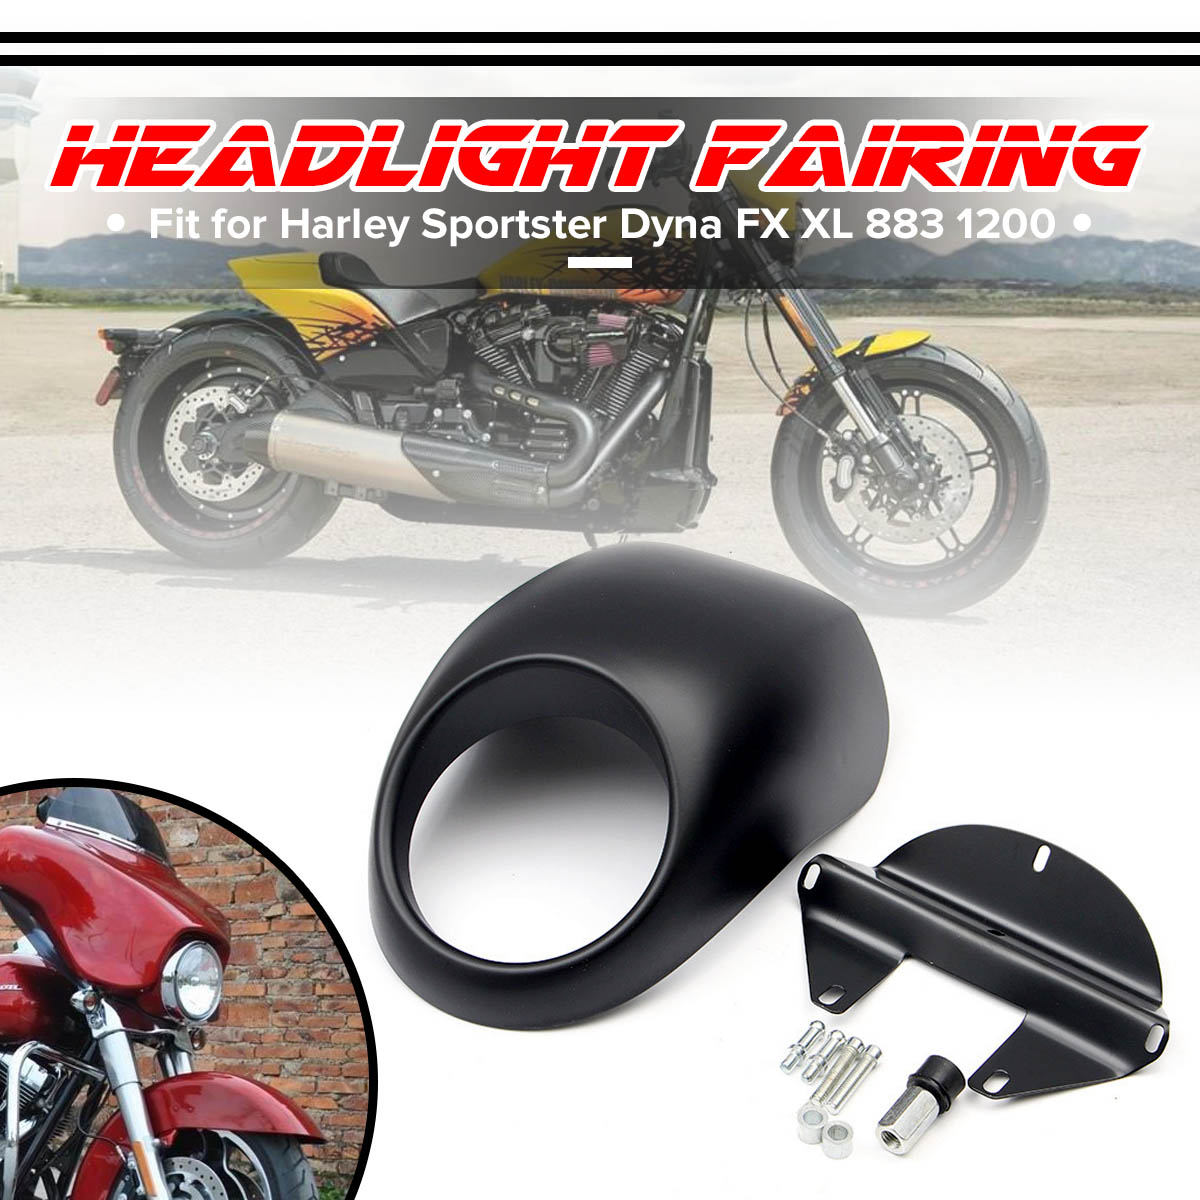 Motorcycle Head light Mask Headlight Fairing Front Cowl Fork Mount For Harley Sportster Dyna FX XL 883 1200 Motor AccessoriesMotorcycle Head light Mask Headlight Fairing Front Cowl Fork Mount For Harley Sportster Dyna FX XL 883 1200 Motor Accessories